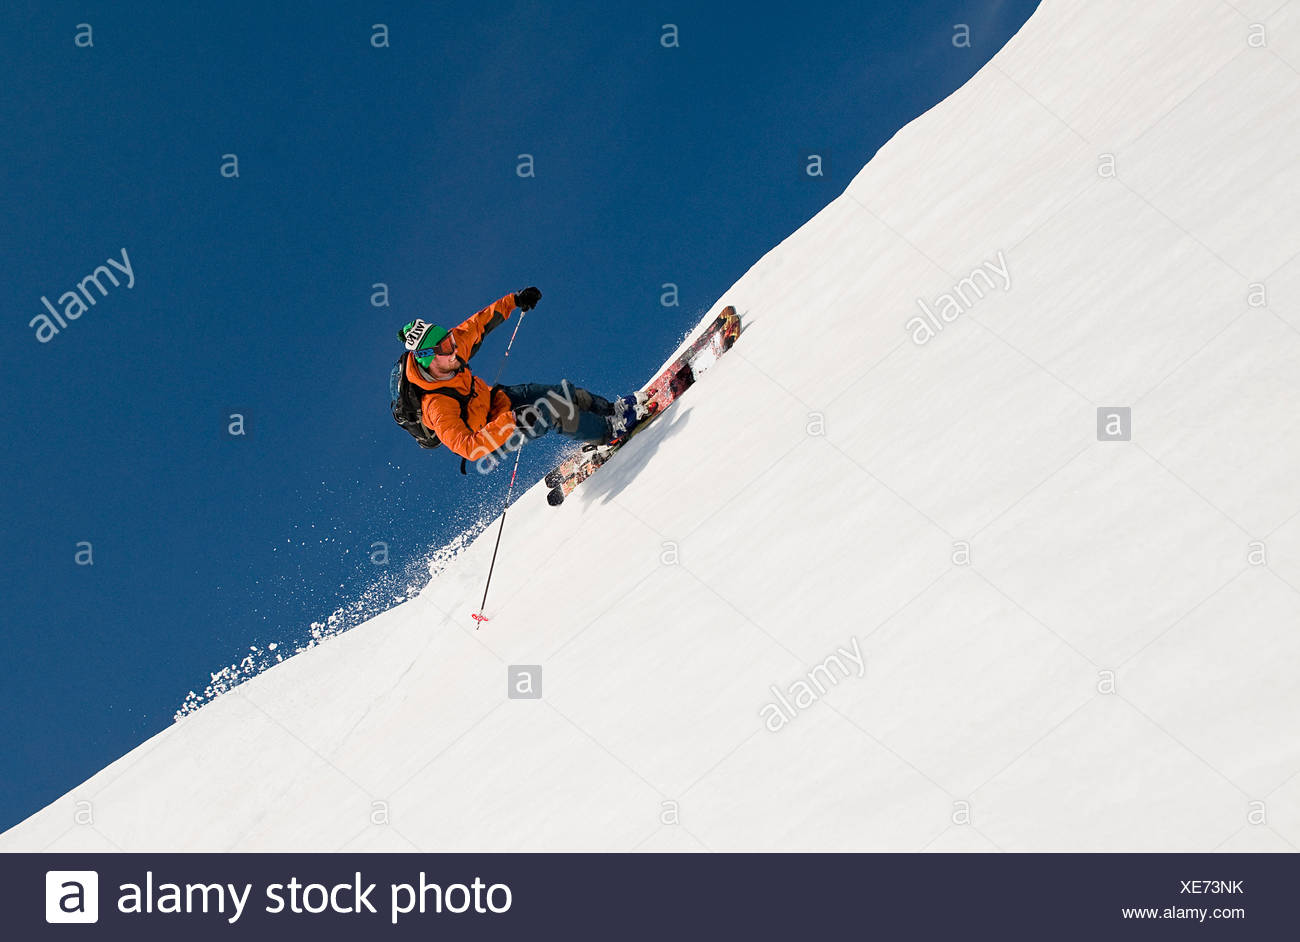 A skier rides the rim of a natural half-pipe while heli-skiing near Juneau, Alaska - Stock Image